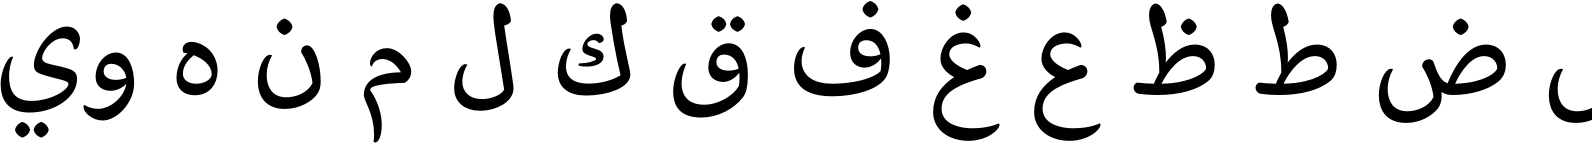 Baldufa Arabic Ltn Regular